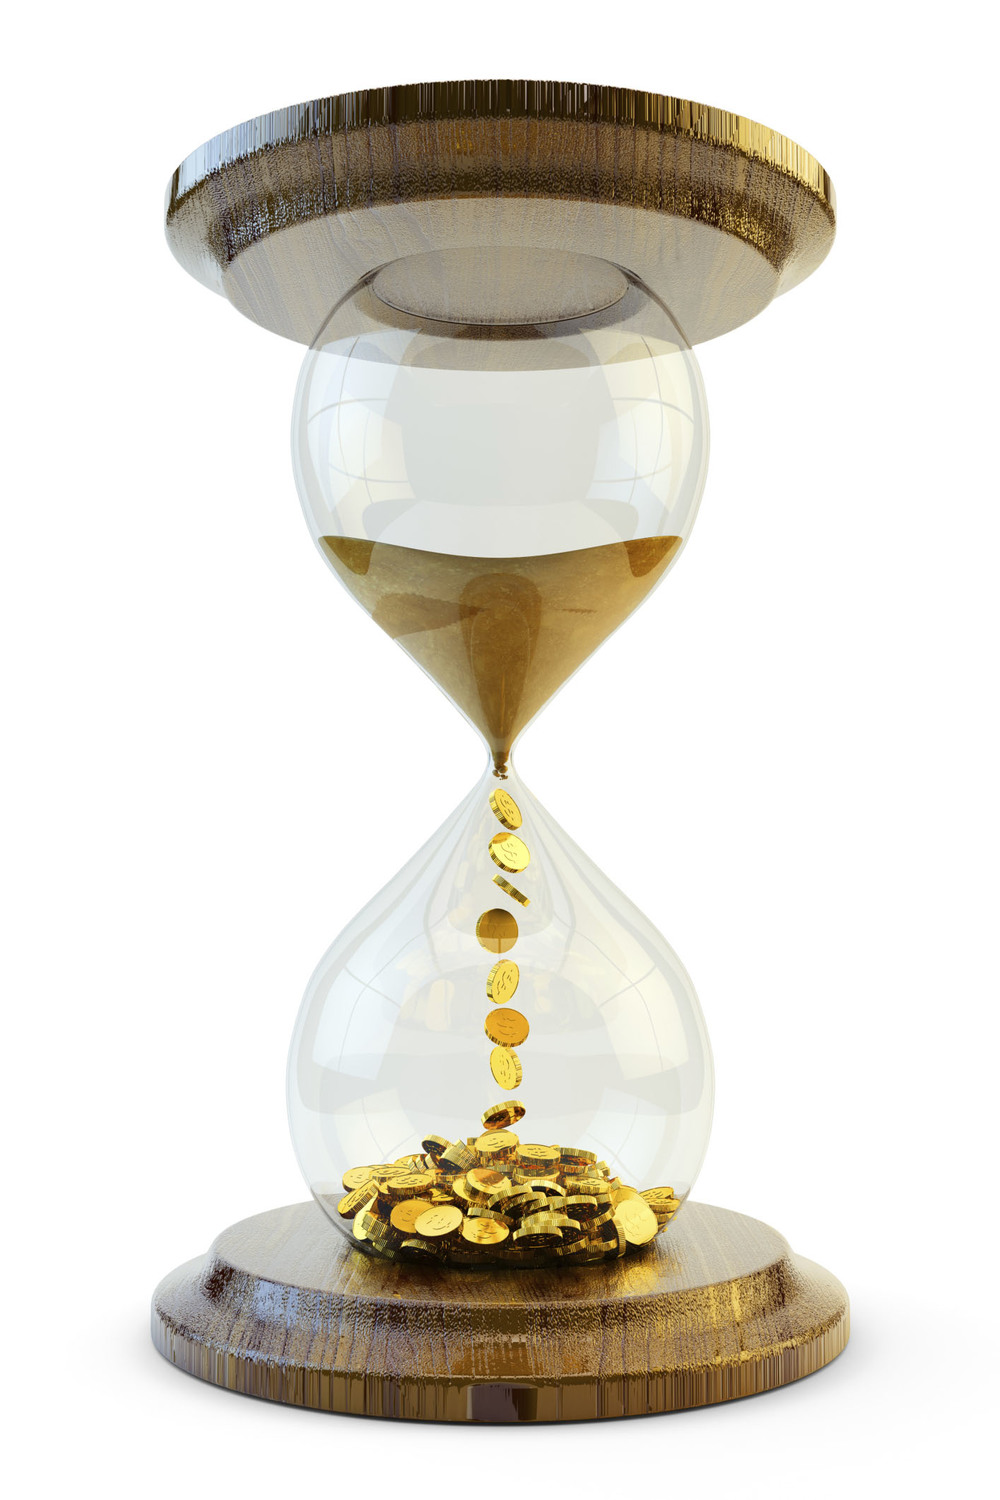 When is the right time to liquidate your precious metal holdings? Call Specialty Metals and we'll help you figure it out. Credit: cybrain/iStock.